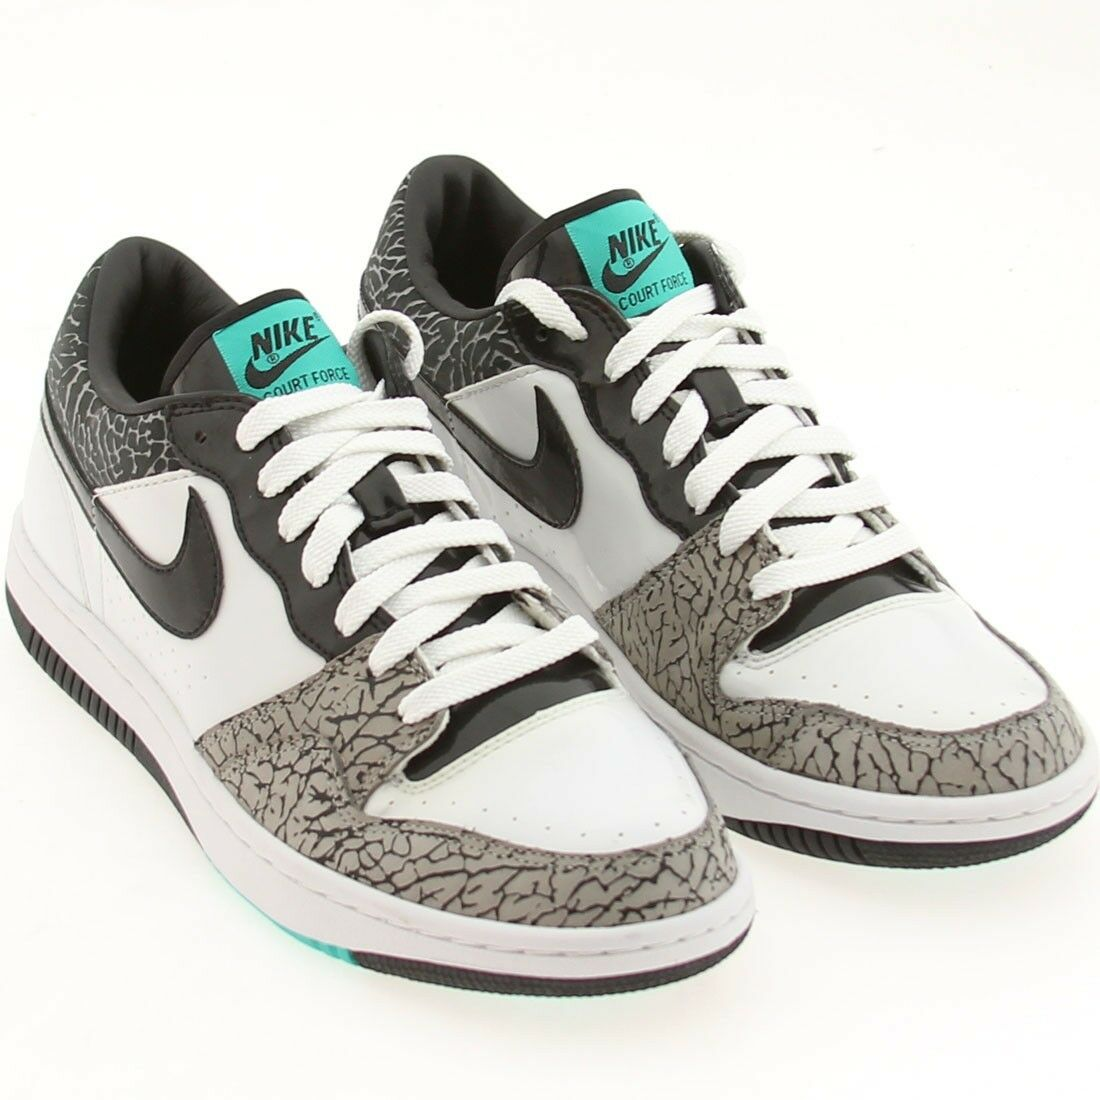 US sz 9.5 Nike Court Force Low Premium Atmos Edition